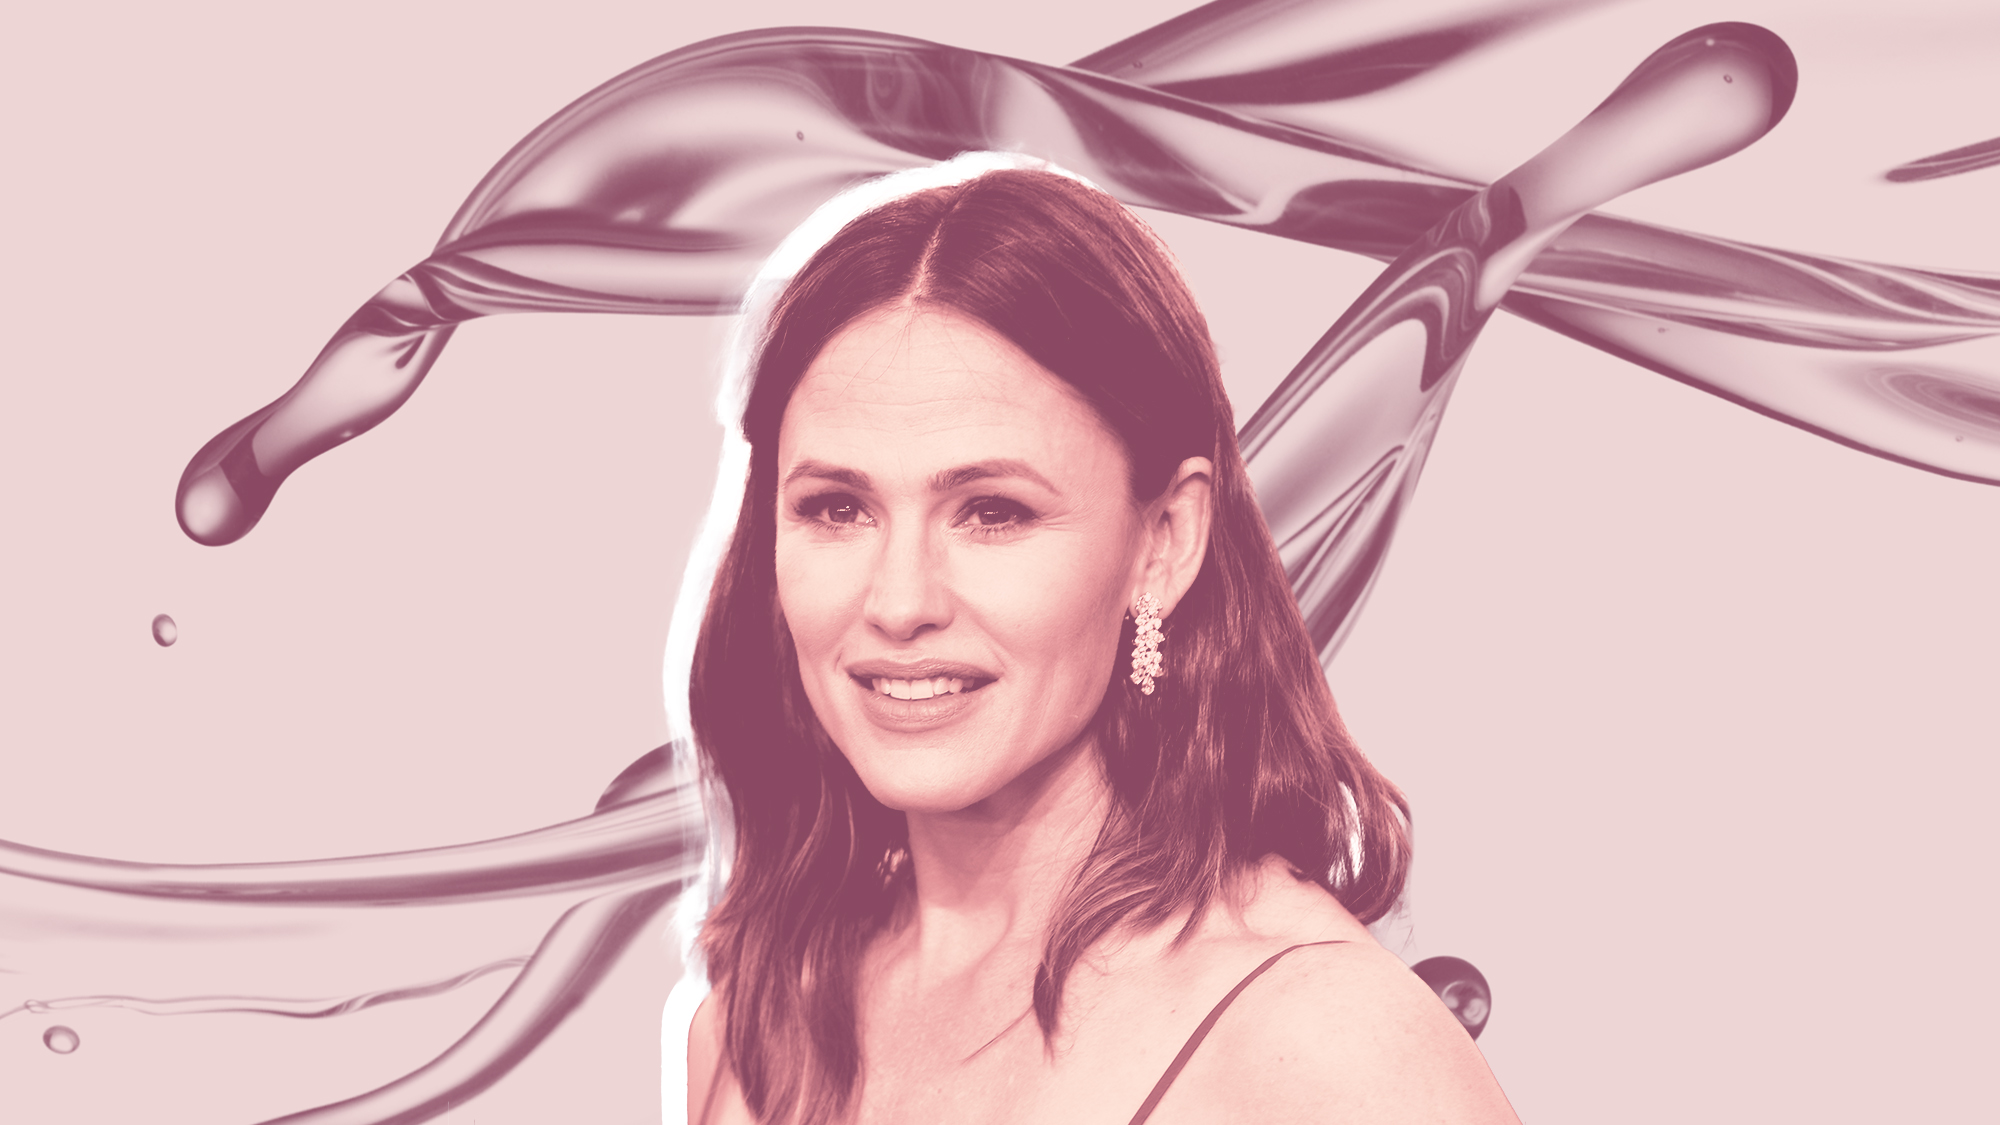 LOS ANGELES, CALIFORNIA - JANUARY 19: Jennifer Garner attends the 26th Annual Screen Actors Guild Awards at The Shrine Auditorium on January 19, 2020 in Los Angeles, California. 721336 (Photo by Kevin Mazur/Getty Images for Turner)